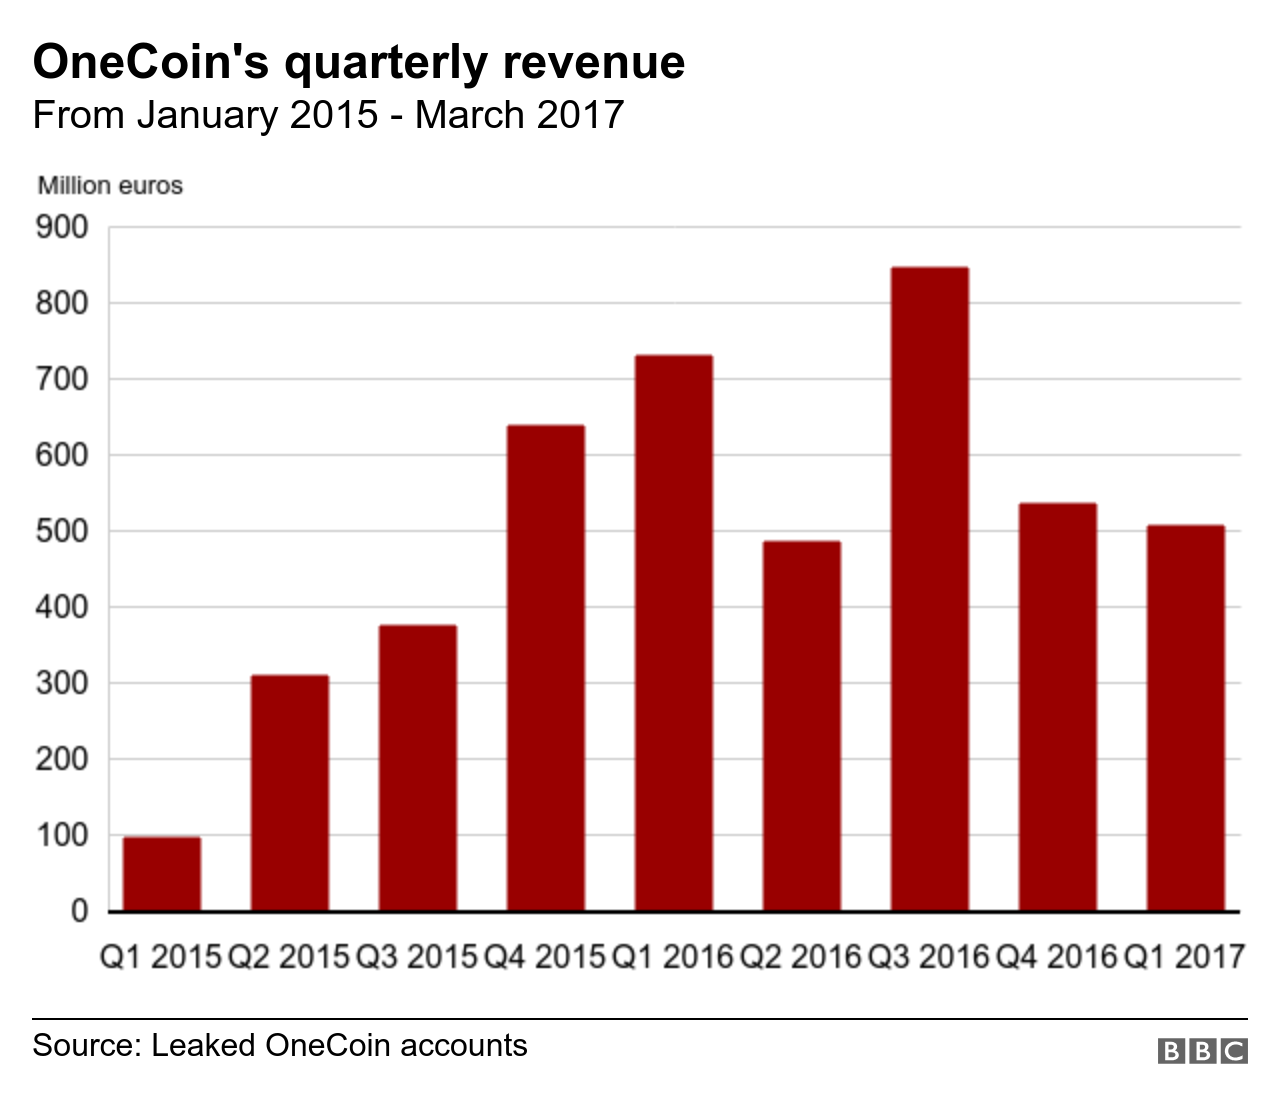 Graphic showing OneCoin's revenue over time